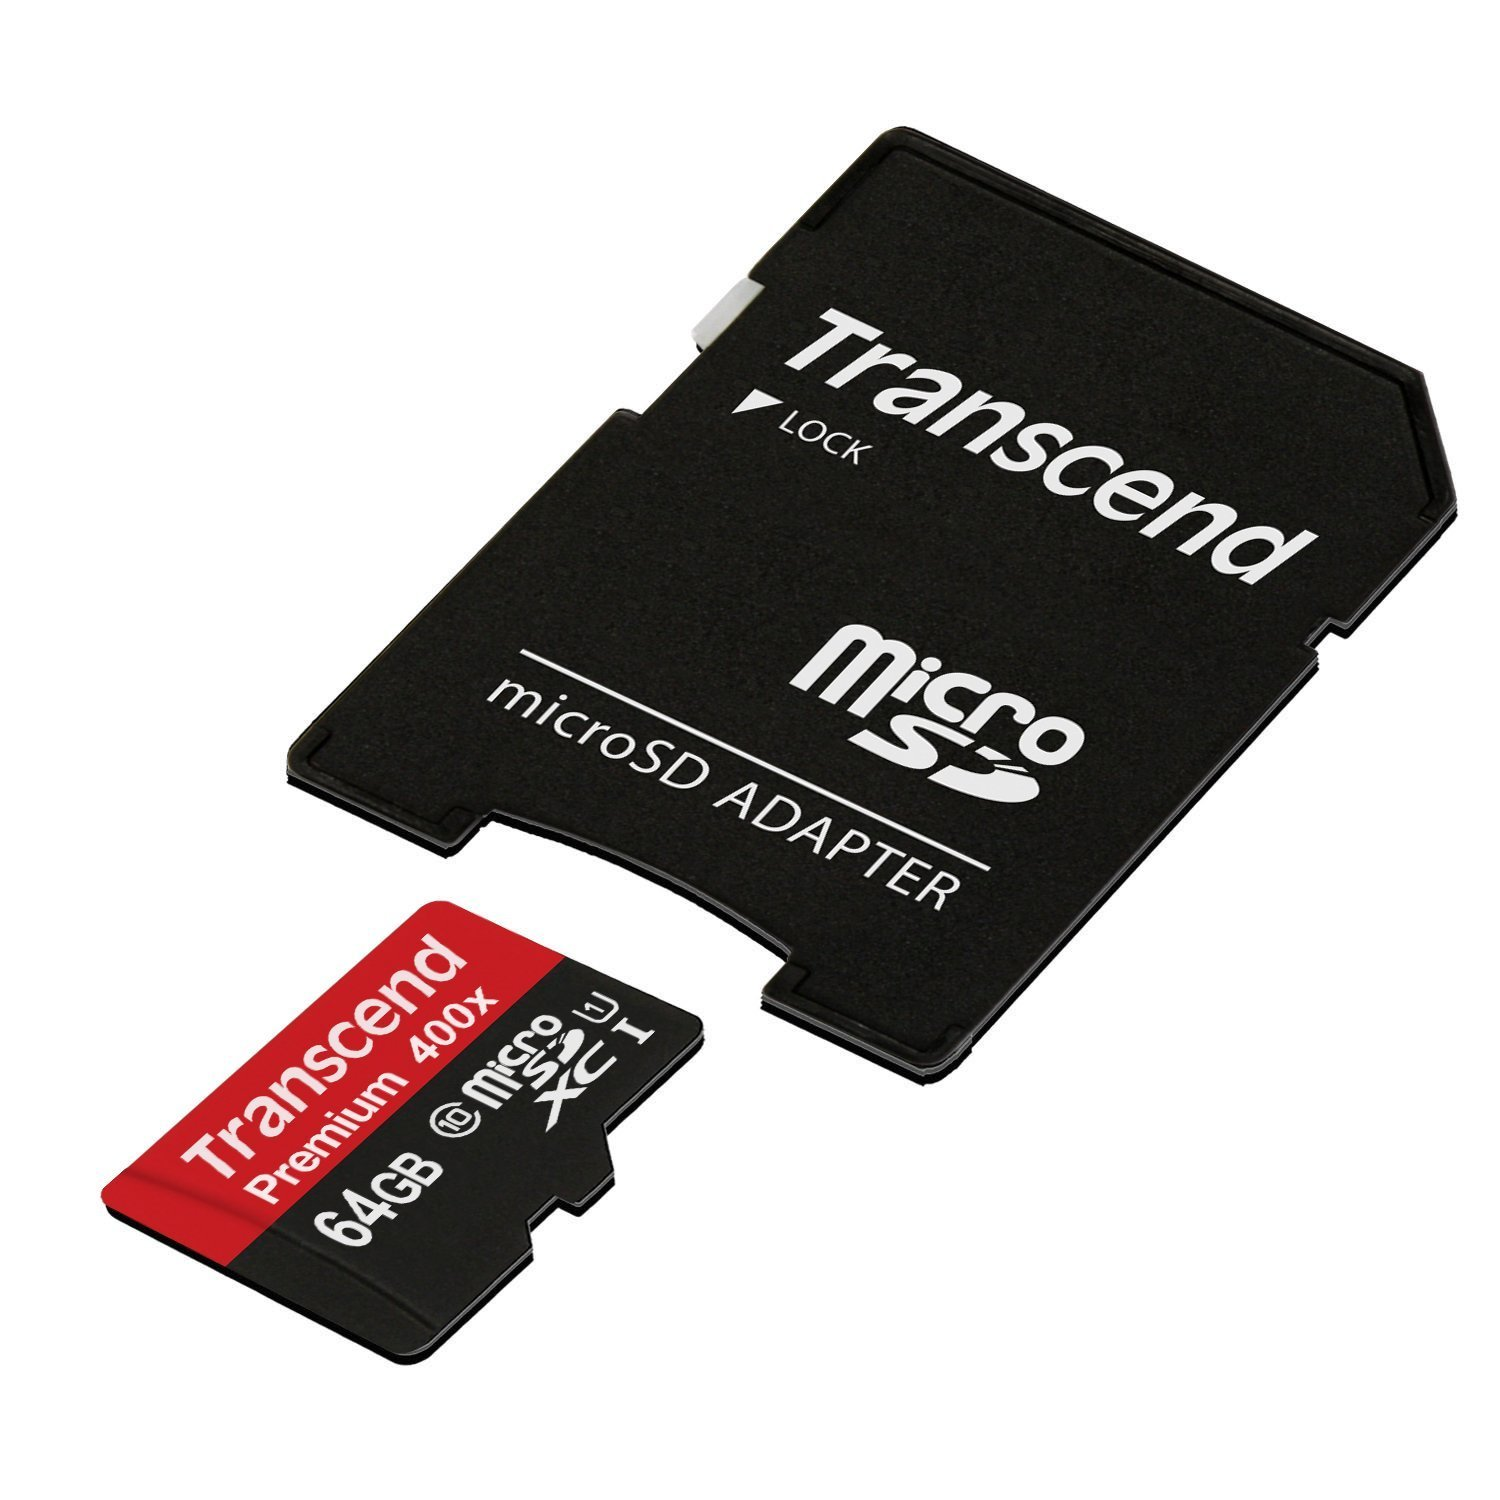 Transcend 64GB MicroSDXC Class10 UHS-1 Memory Card with Adapter 60 MB/s (TS64GUSDU1)